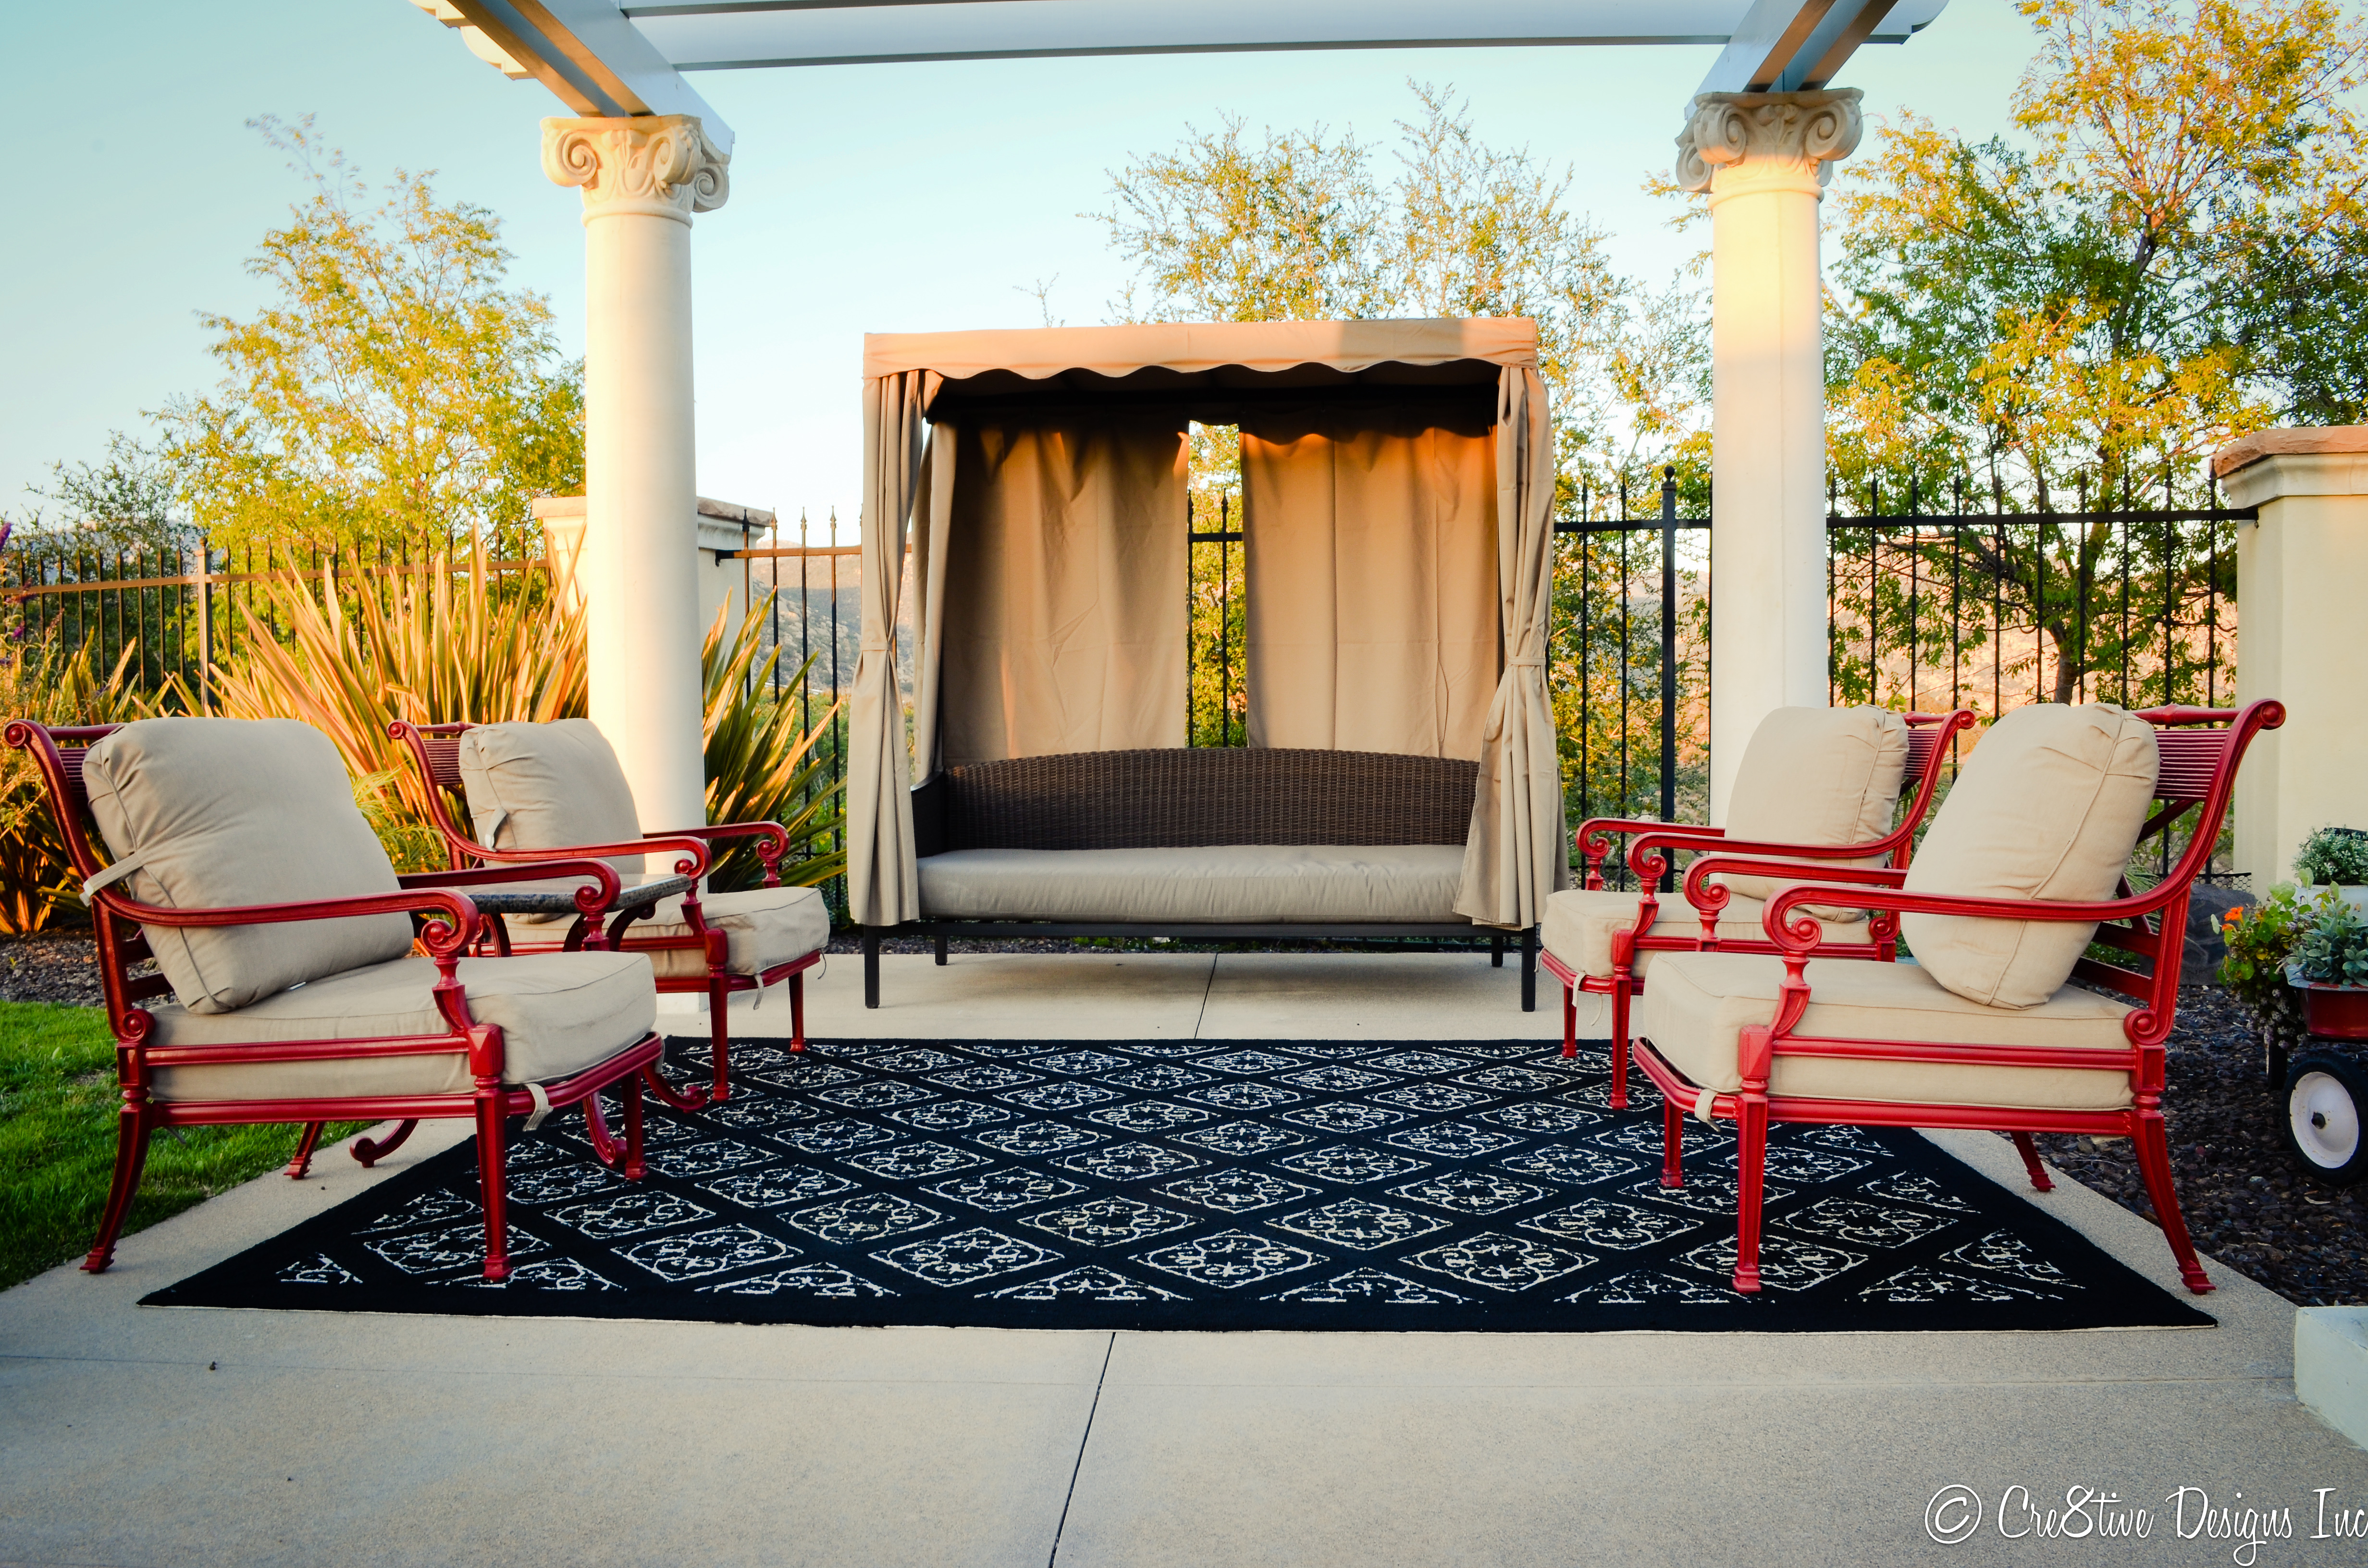 Do it yourself outdoor daybed - Target Outdoor Daybed